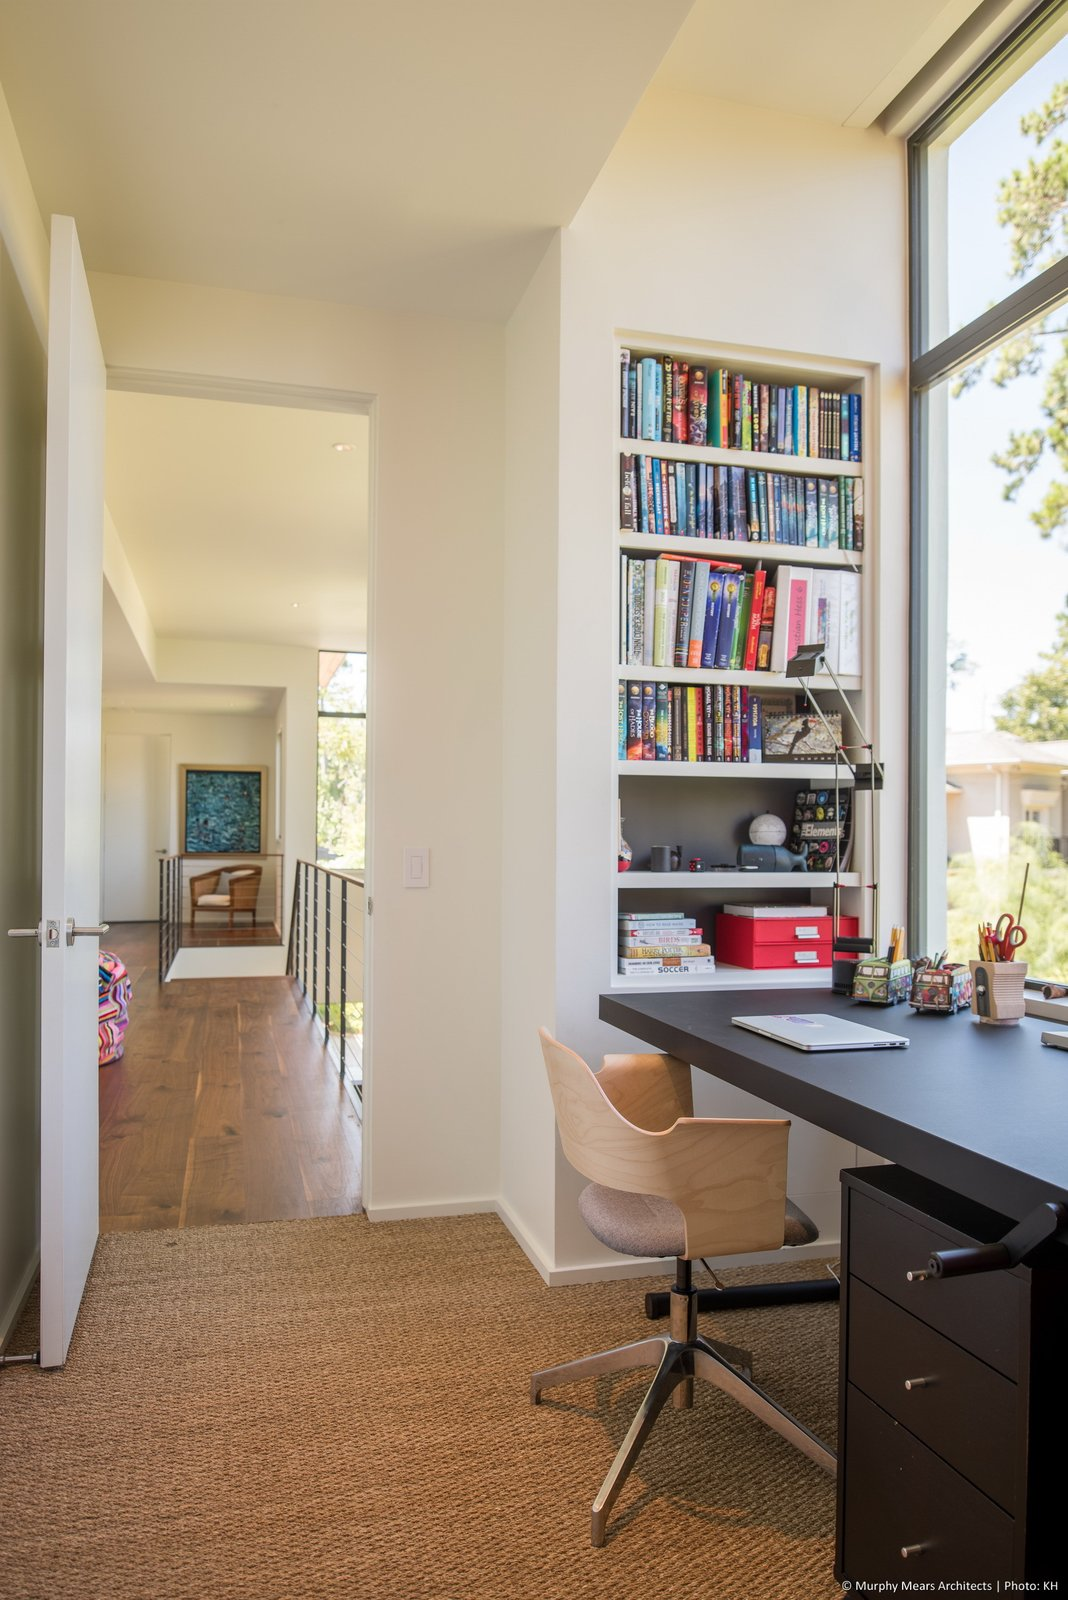 Office, Study Room Type, Chair, Shelves, Desk, Storage, Bookcase, Lamps, Medium Hardwood Floor, Rug Floor, and Carpet Floor  Open House by Murphy Mears Architects